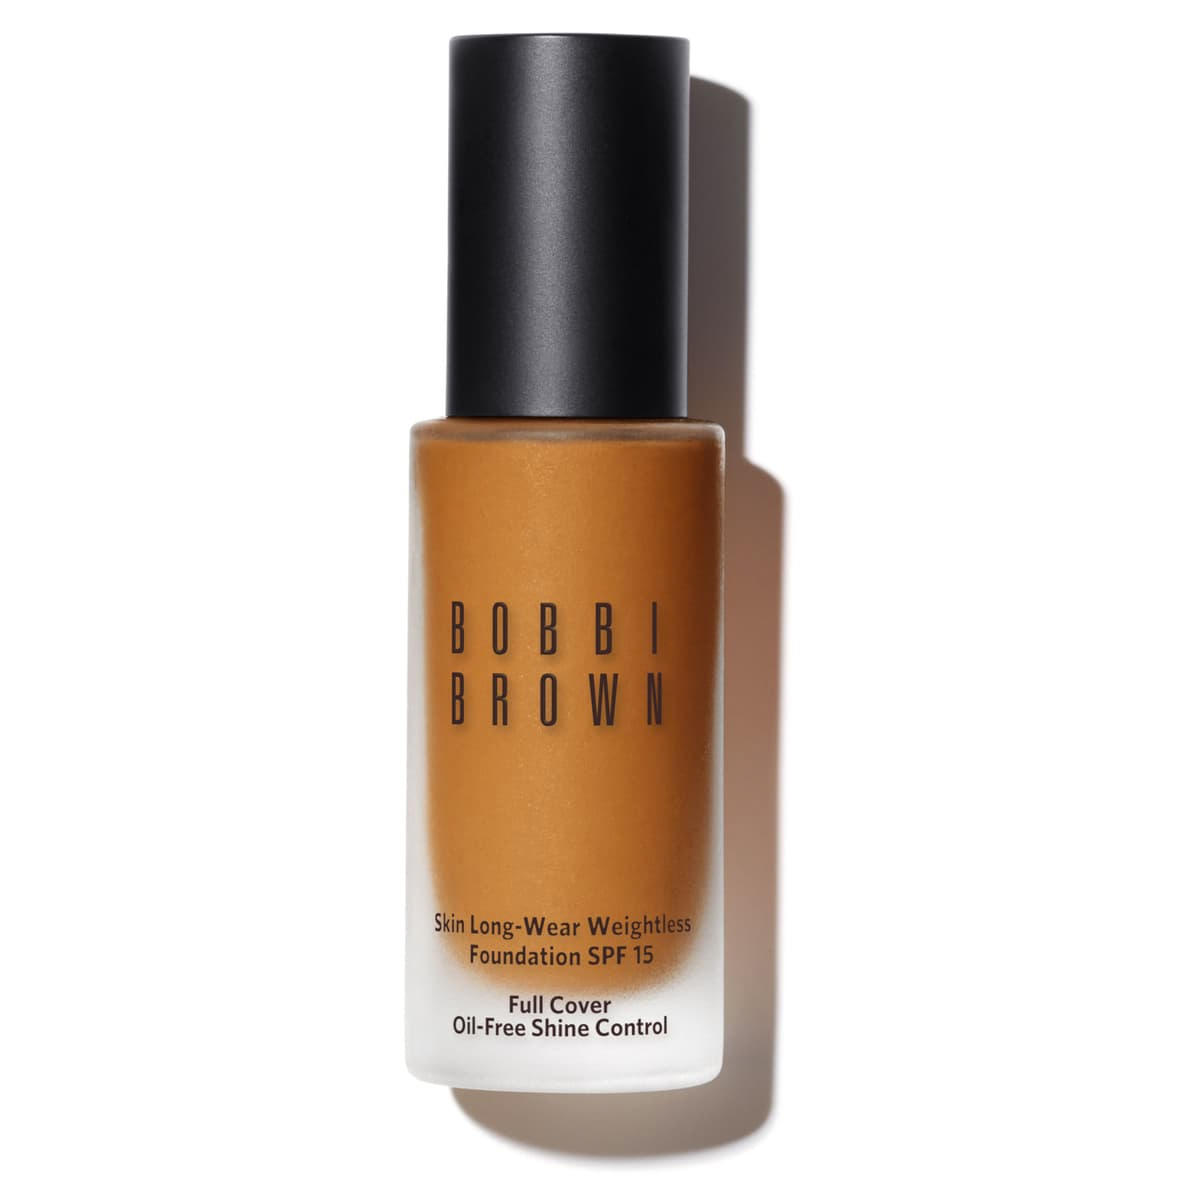 Bobbi Brown Skin Long-Wear Weightless Foundation Golden 6